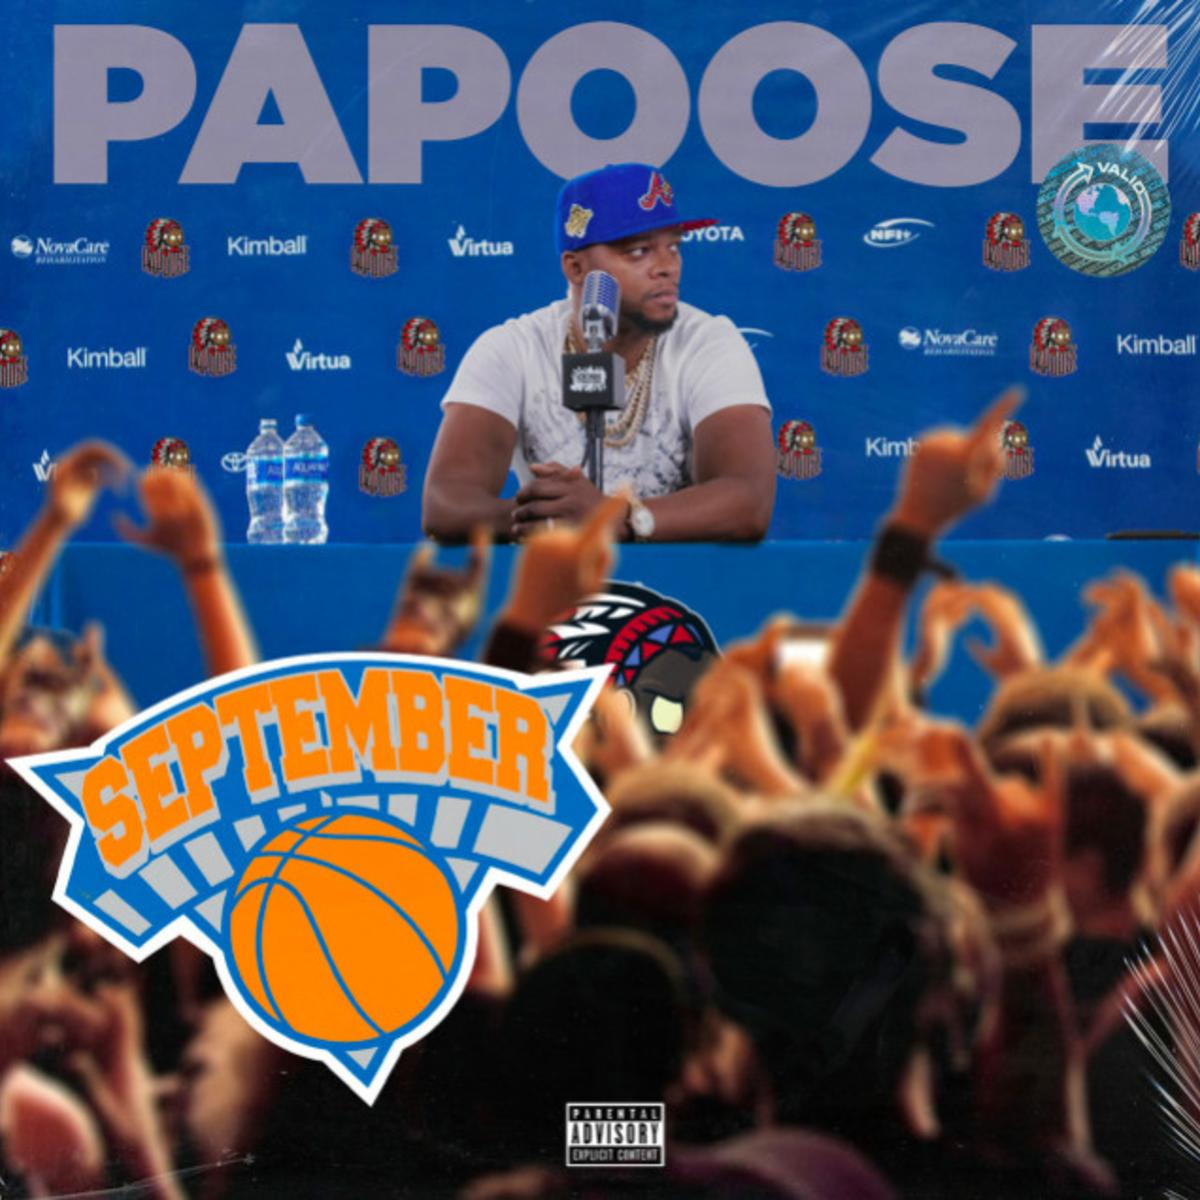 Papoose – Head Lock MP3 DOWNLOAD (Official Music) • More Naija song